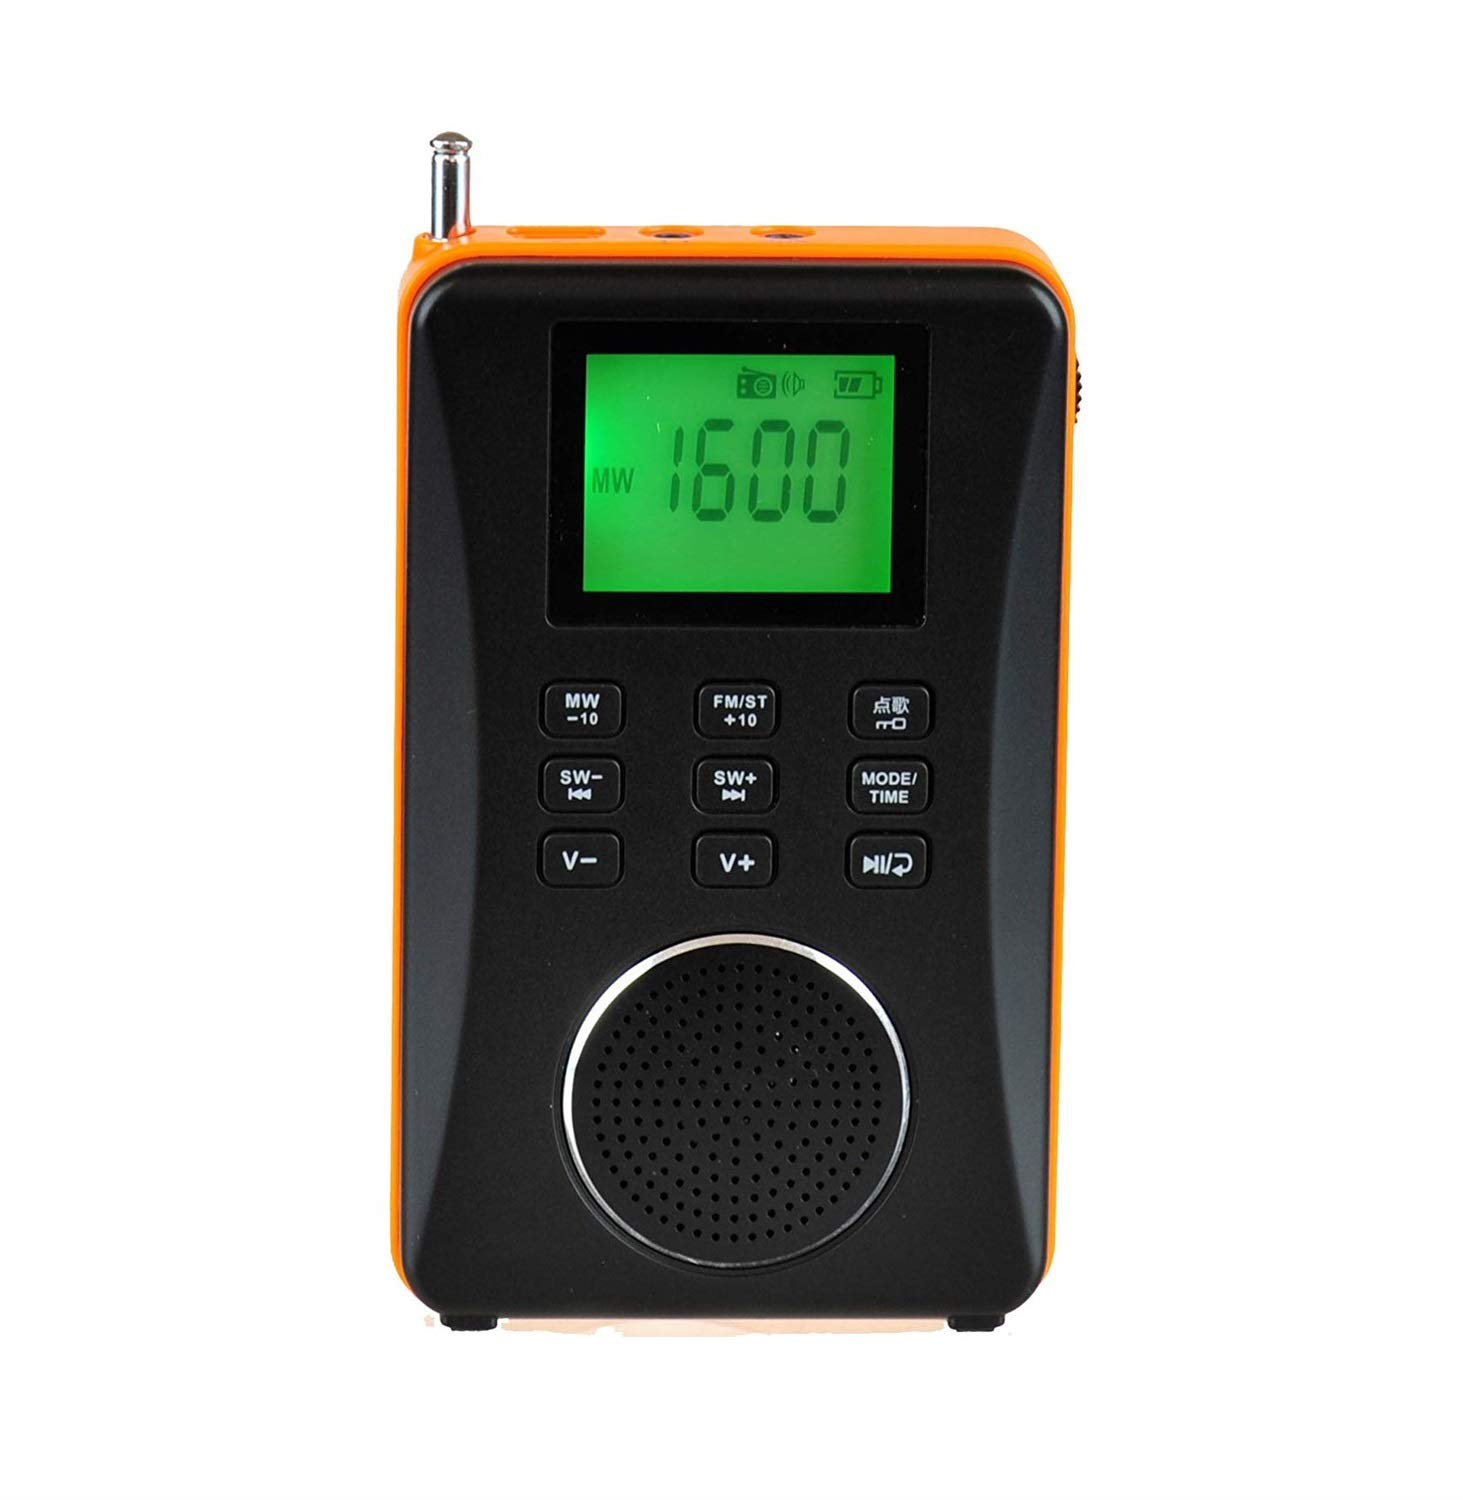 FridCy 3-in-1 Rechargeable AM/FM Shortwave Radio, Portable Speaker & MP3 Player with Built-in Micro SD/TF Card Reader Outdoor Portable Radio by FridCy